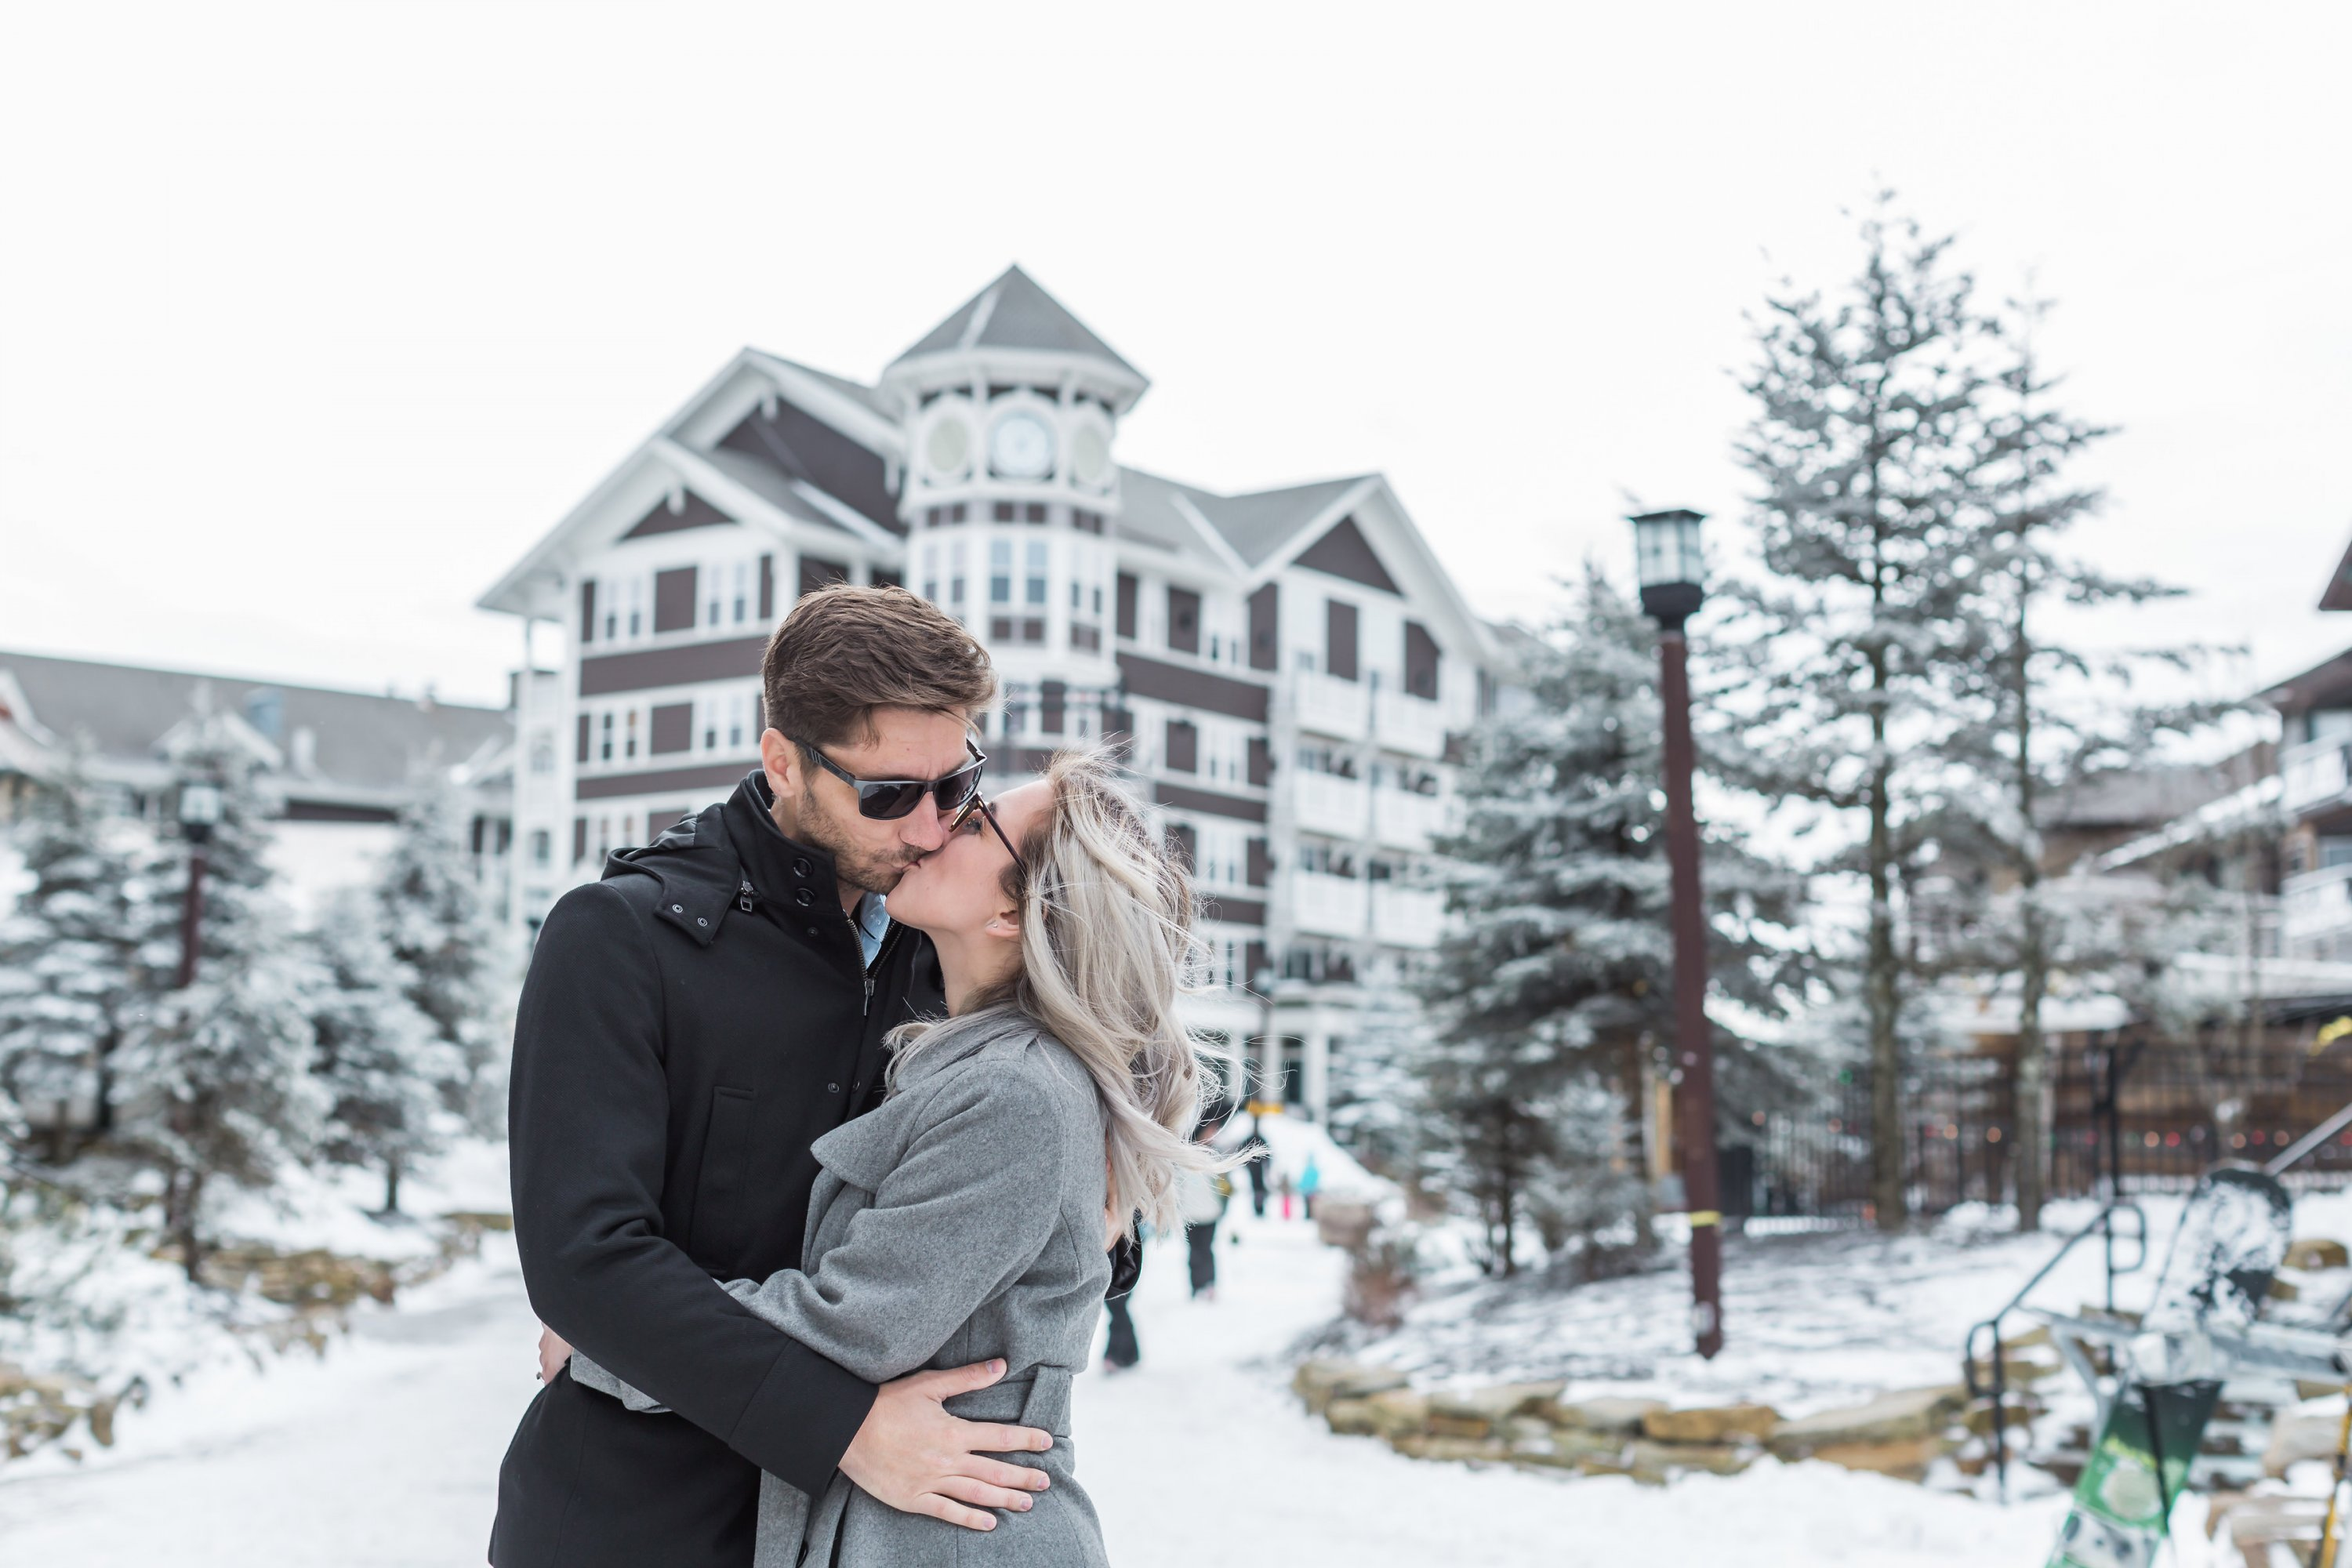 snowshoe mountain resort west virginia DC couple engagement wintery weekend getaway snow engagement snowy engagement